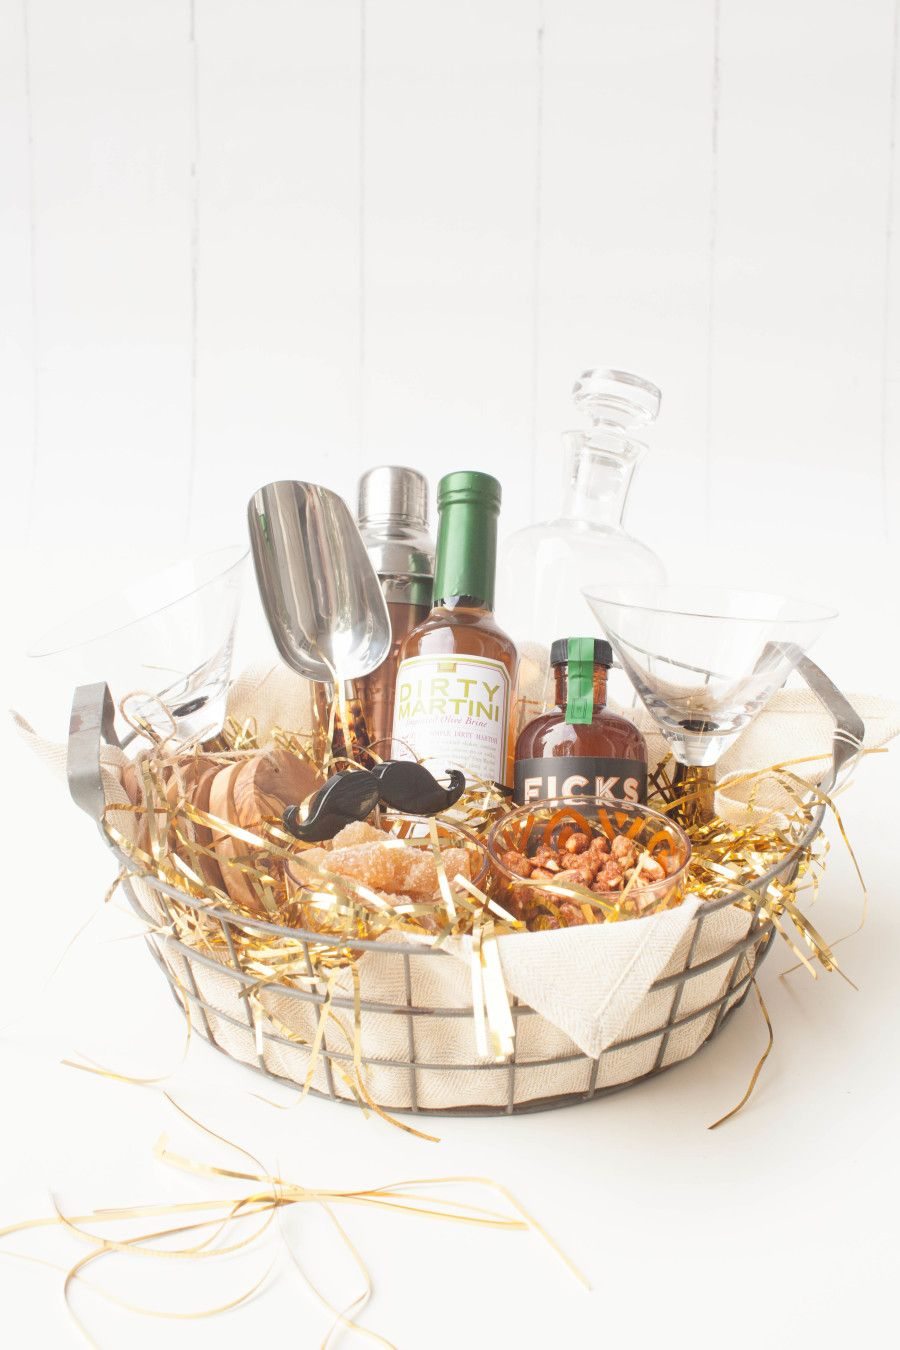 Personalized Gift Baskets from HomeGoods Liquor gift